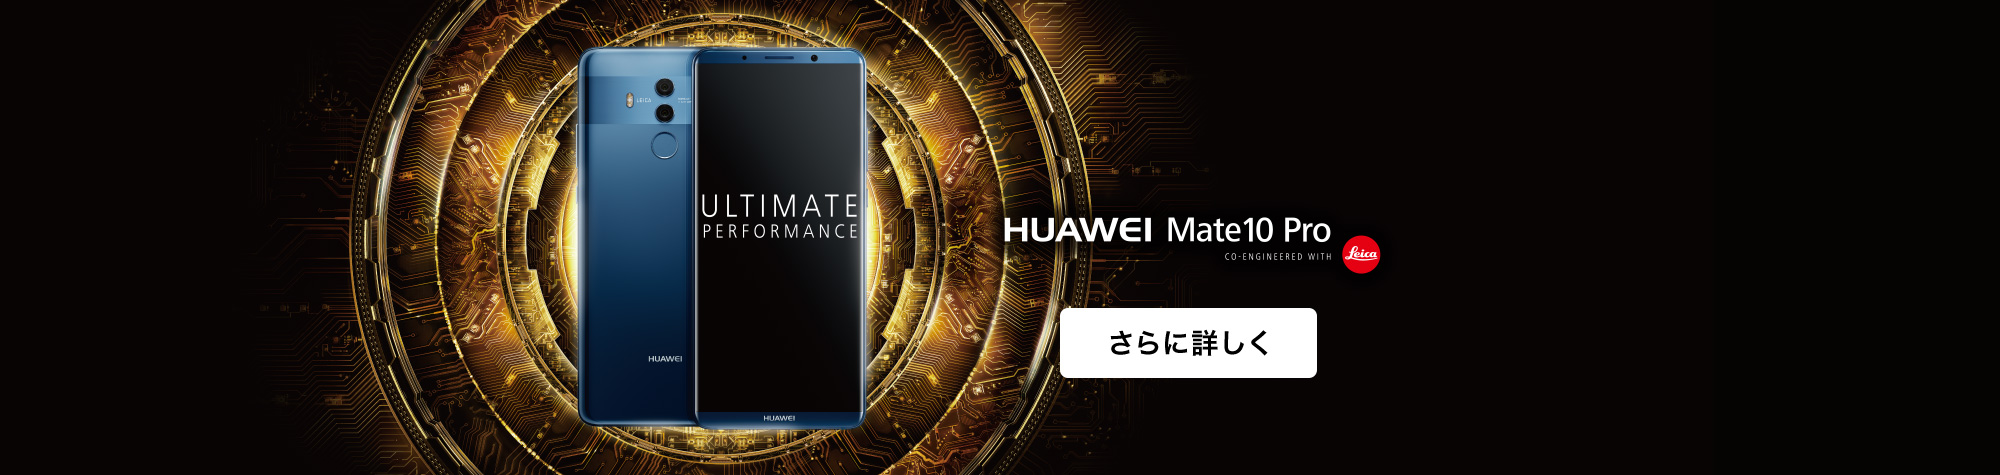 Huawei Mate 10 Pro さらに詳しく